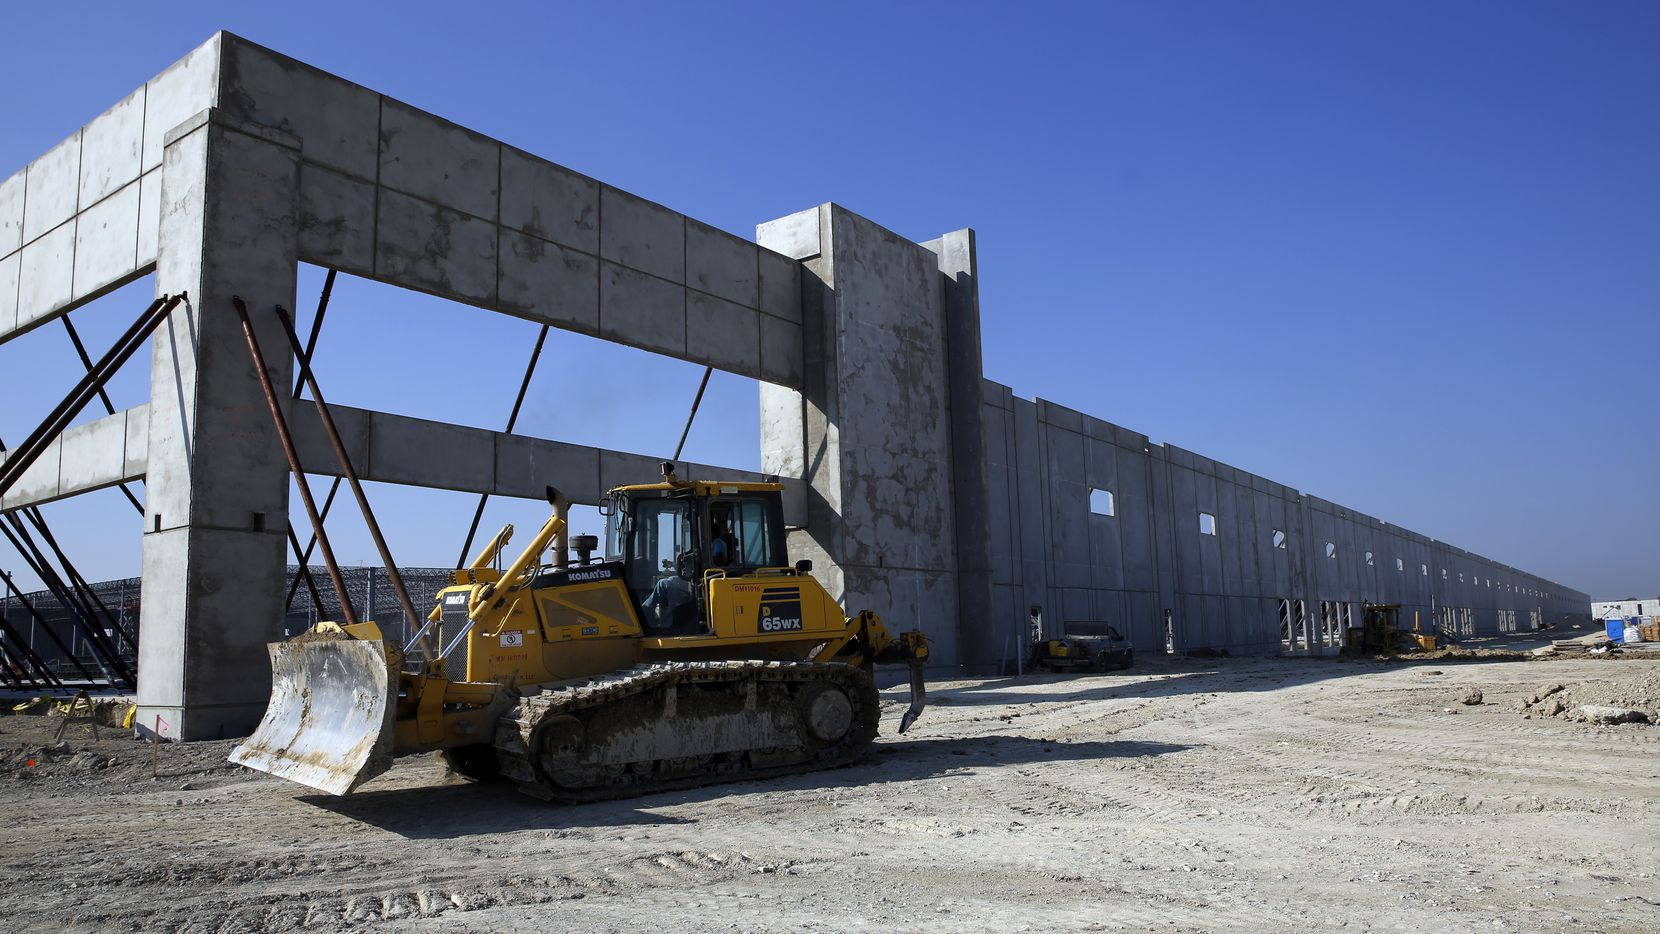 McKinney has selected developer Hunt Southwest to build a new warehouse project.